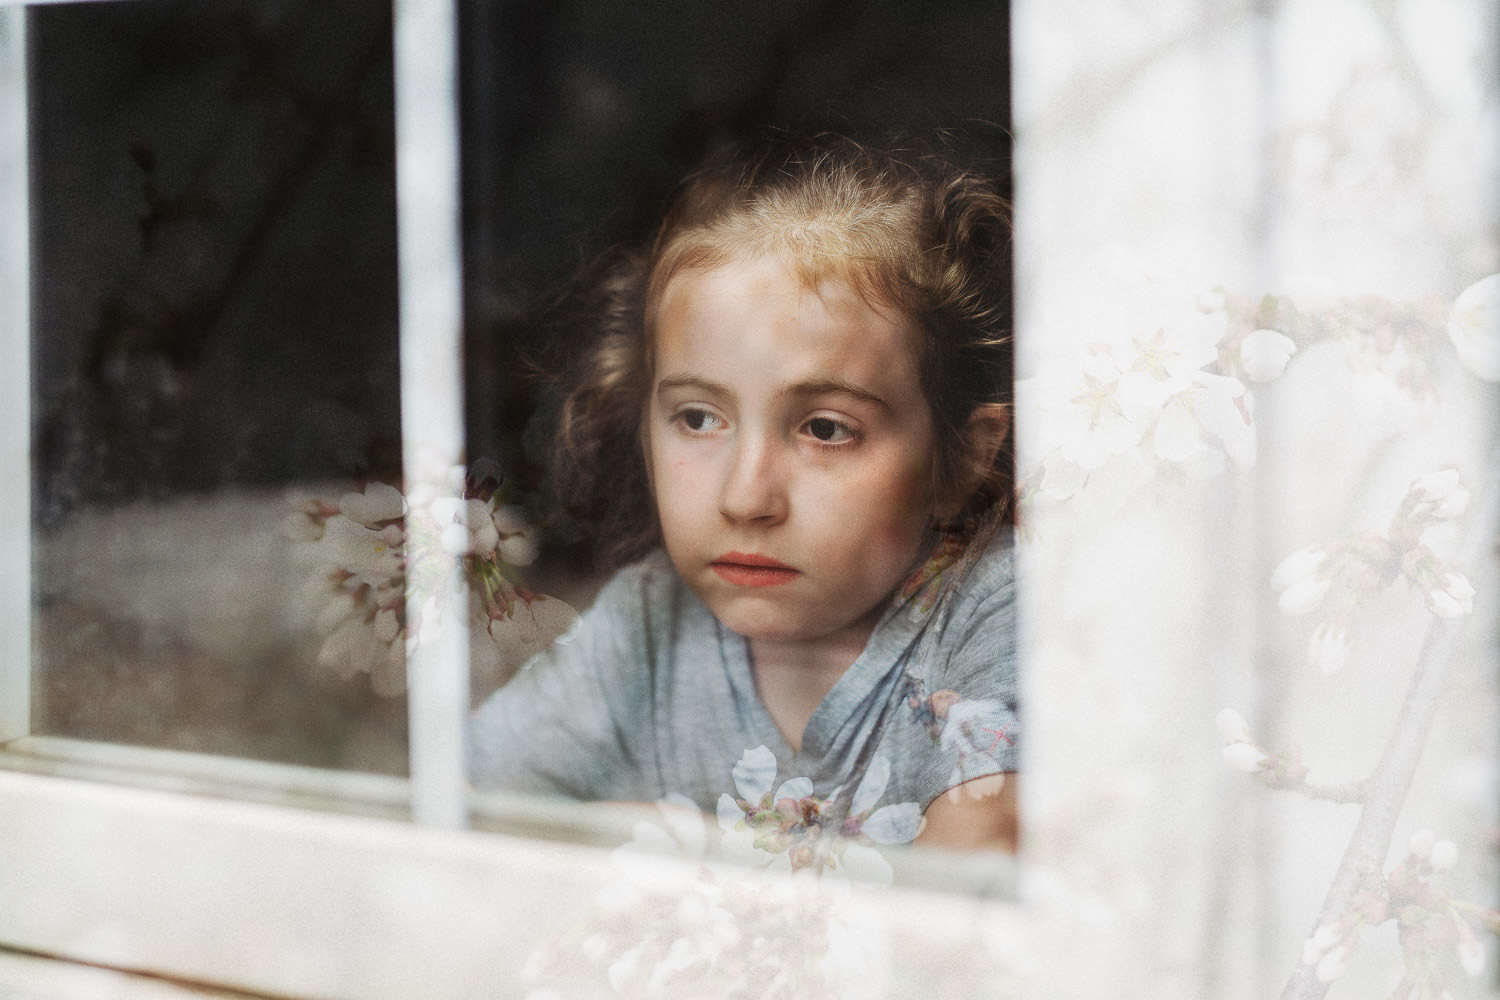 A little girl looks out a window with reflection of flowers on her face.